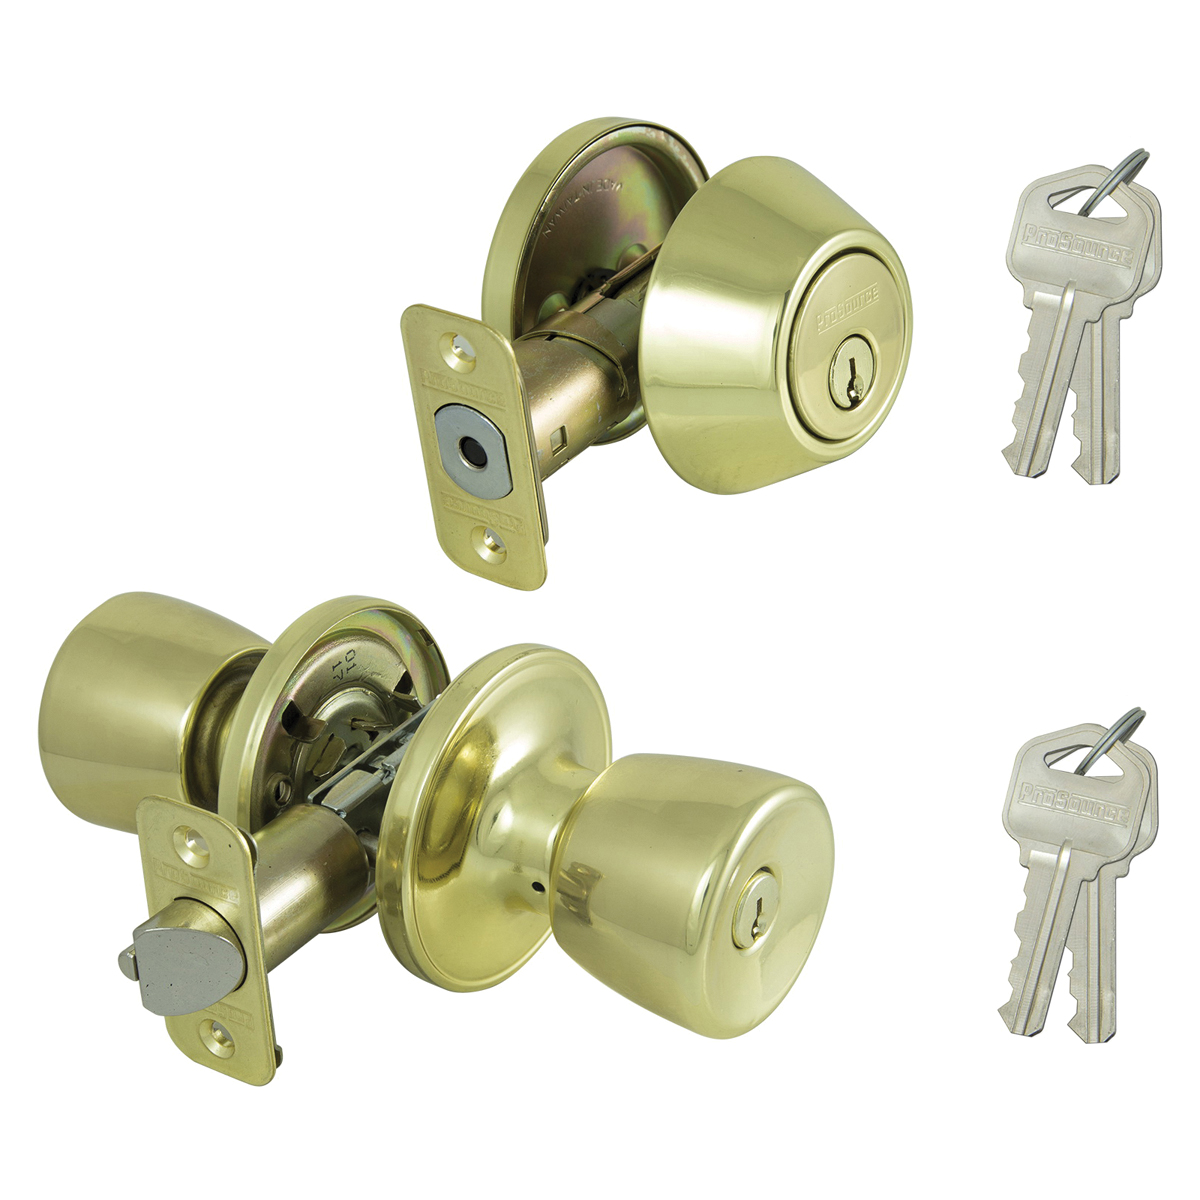 Picture of Prosource BS721BRA4F Deadbolt and Entry Lockset, Keyed Alike Key, Brass